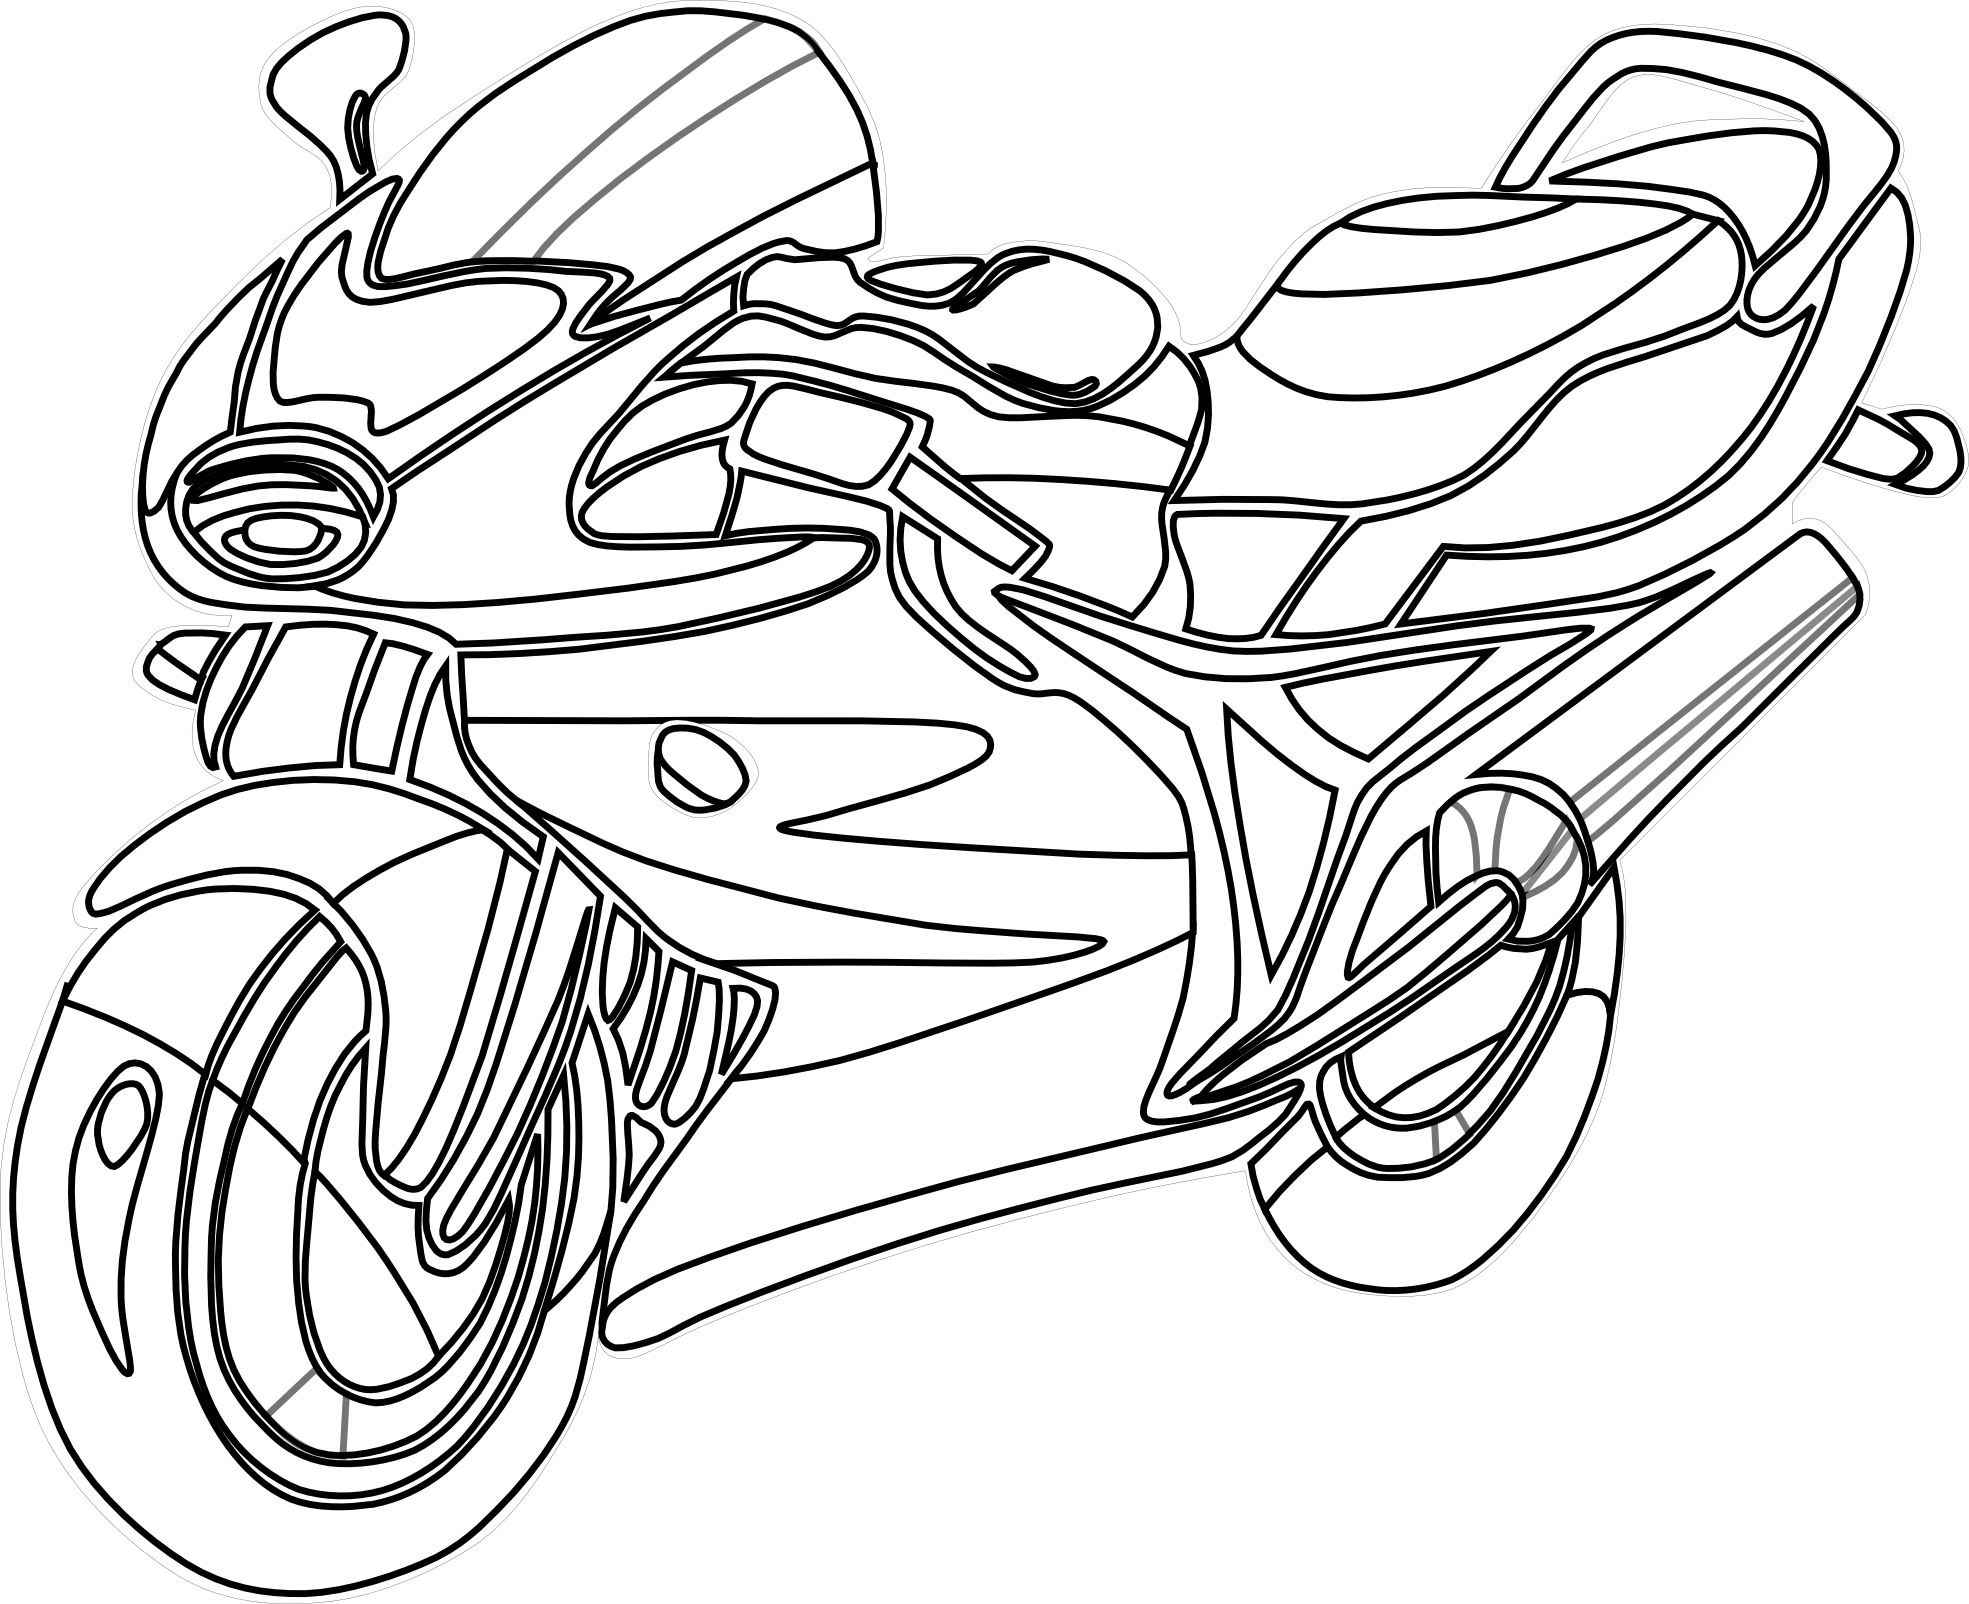 Scooter clipart black and white. Motorcycle outline drawing at